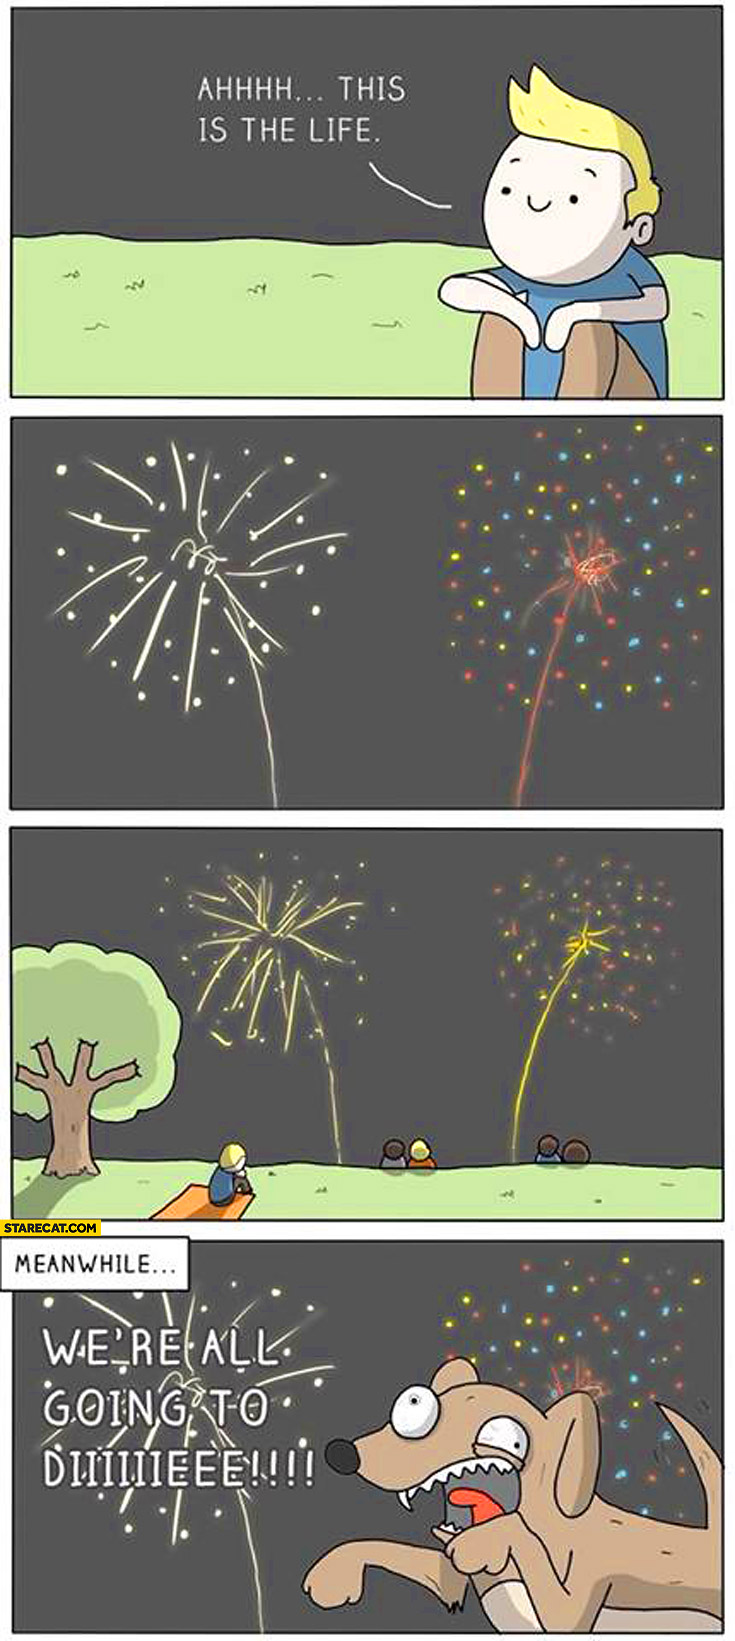 Ah this is life meanwhile we're all going to die fireworks dog